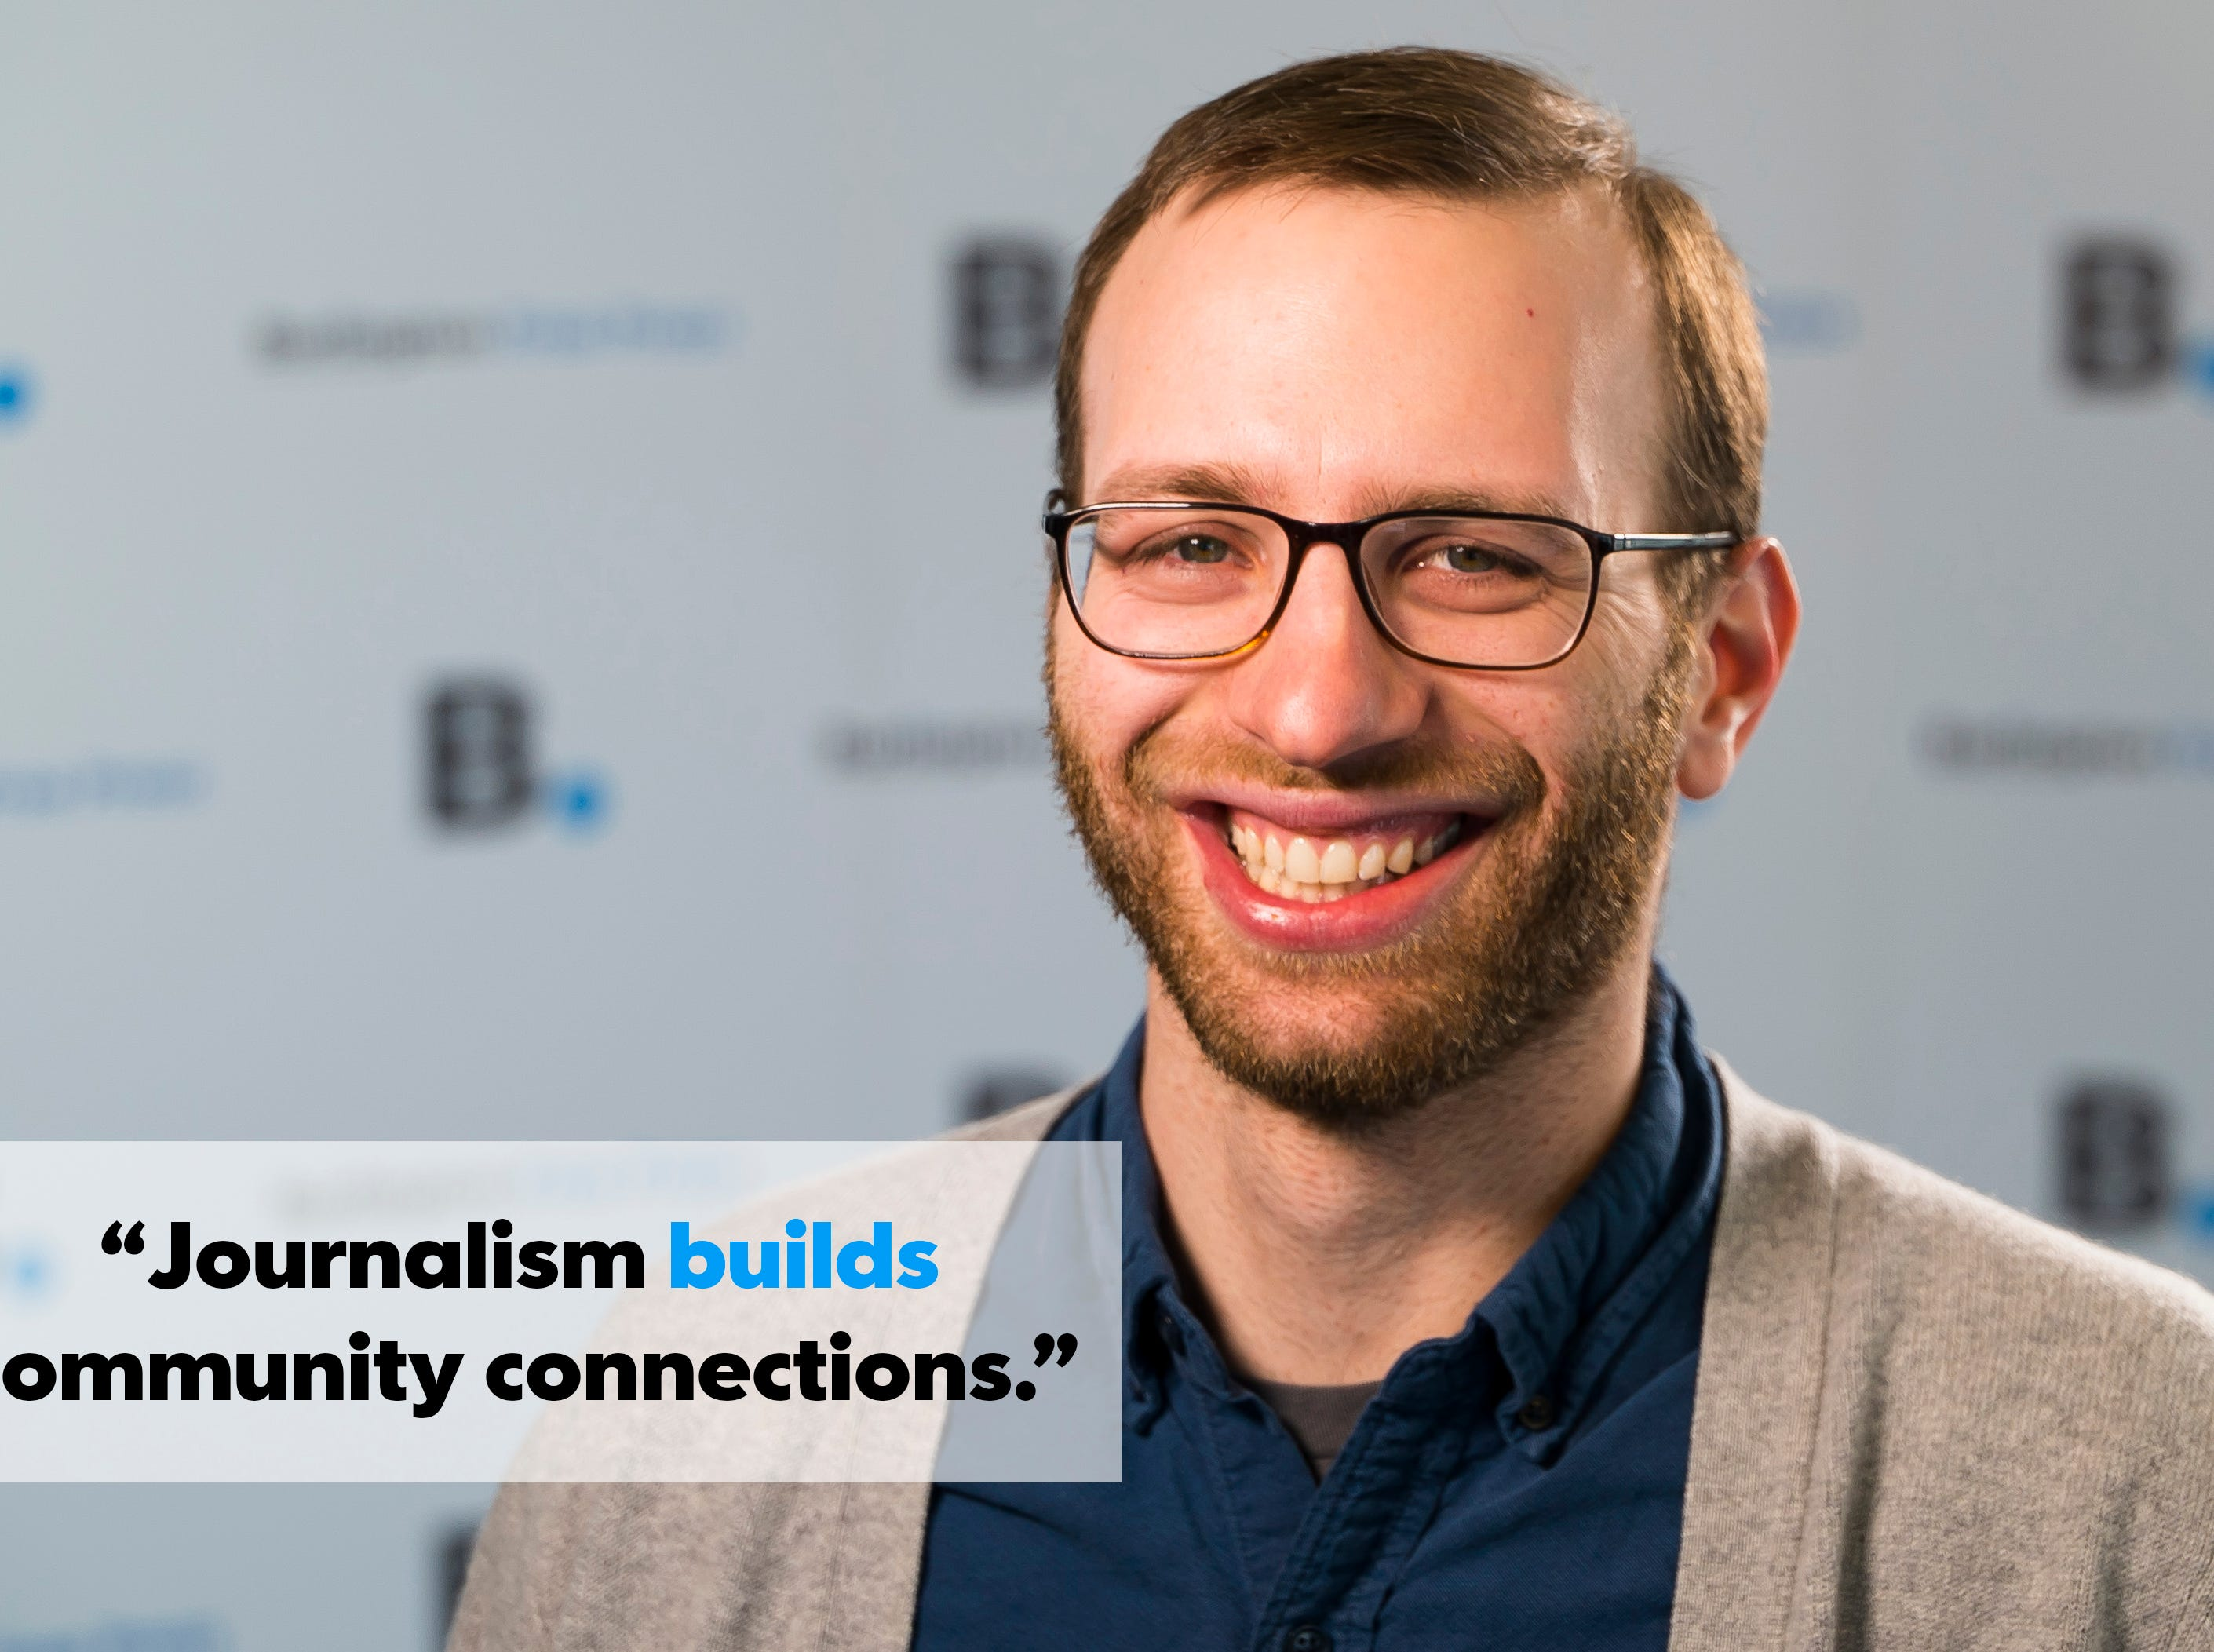 Evan Weiss joined the Free Press newsroom in 2018 and has worked to bring the reader the best digital experience possible. He believes local journalism is necessary for connecting social, political, and economic dots, so the public can make sense of their environment.